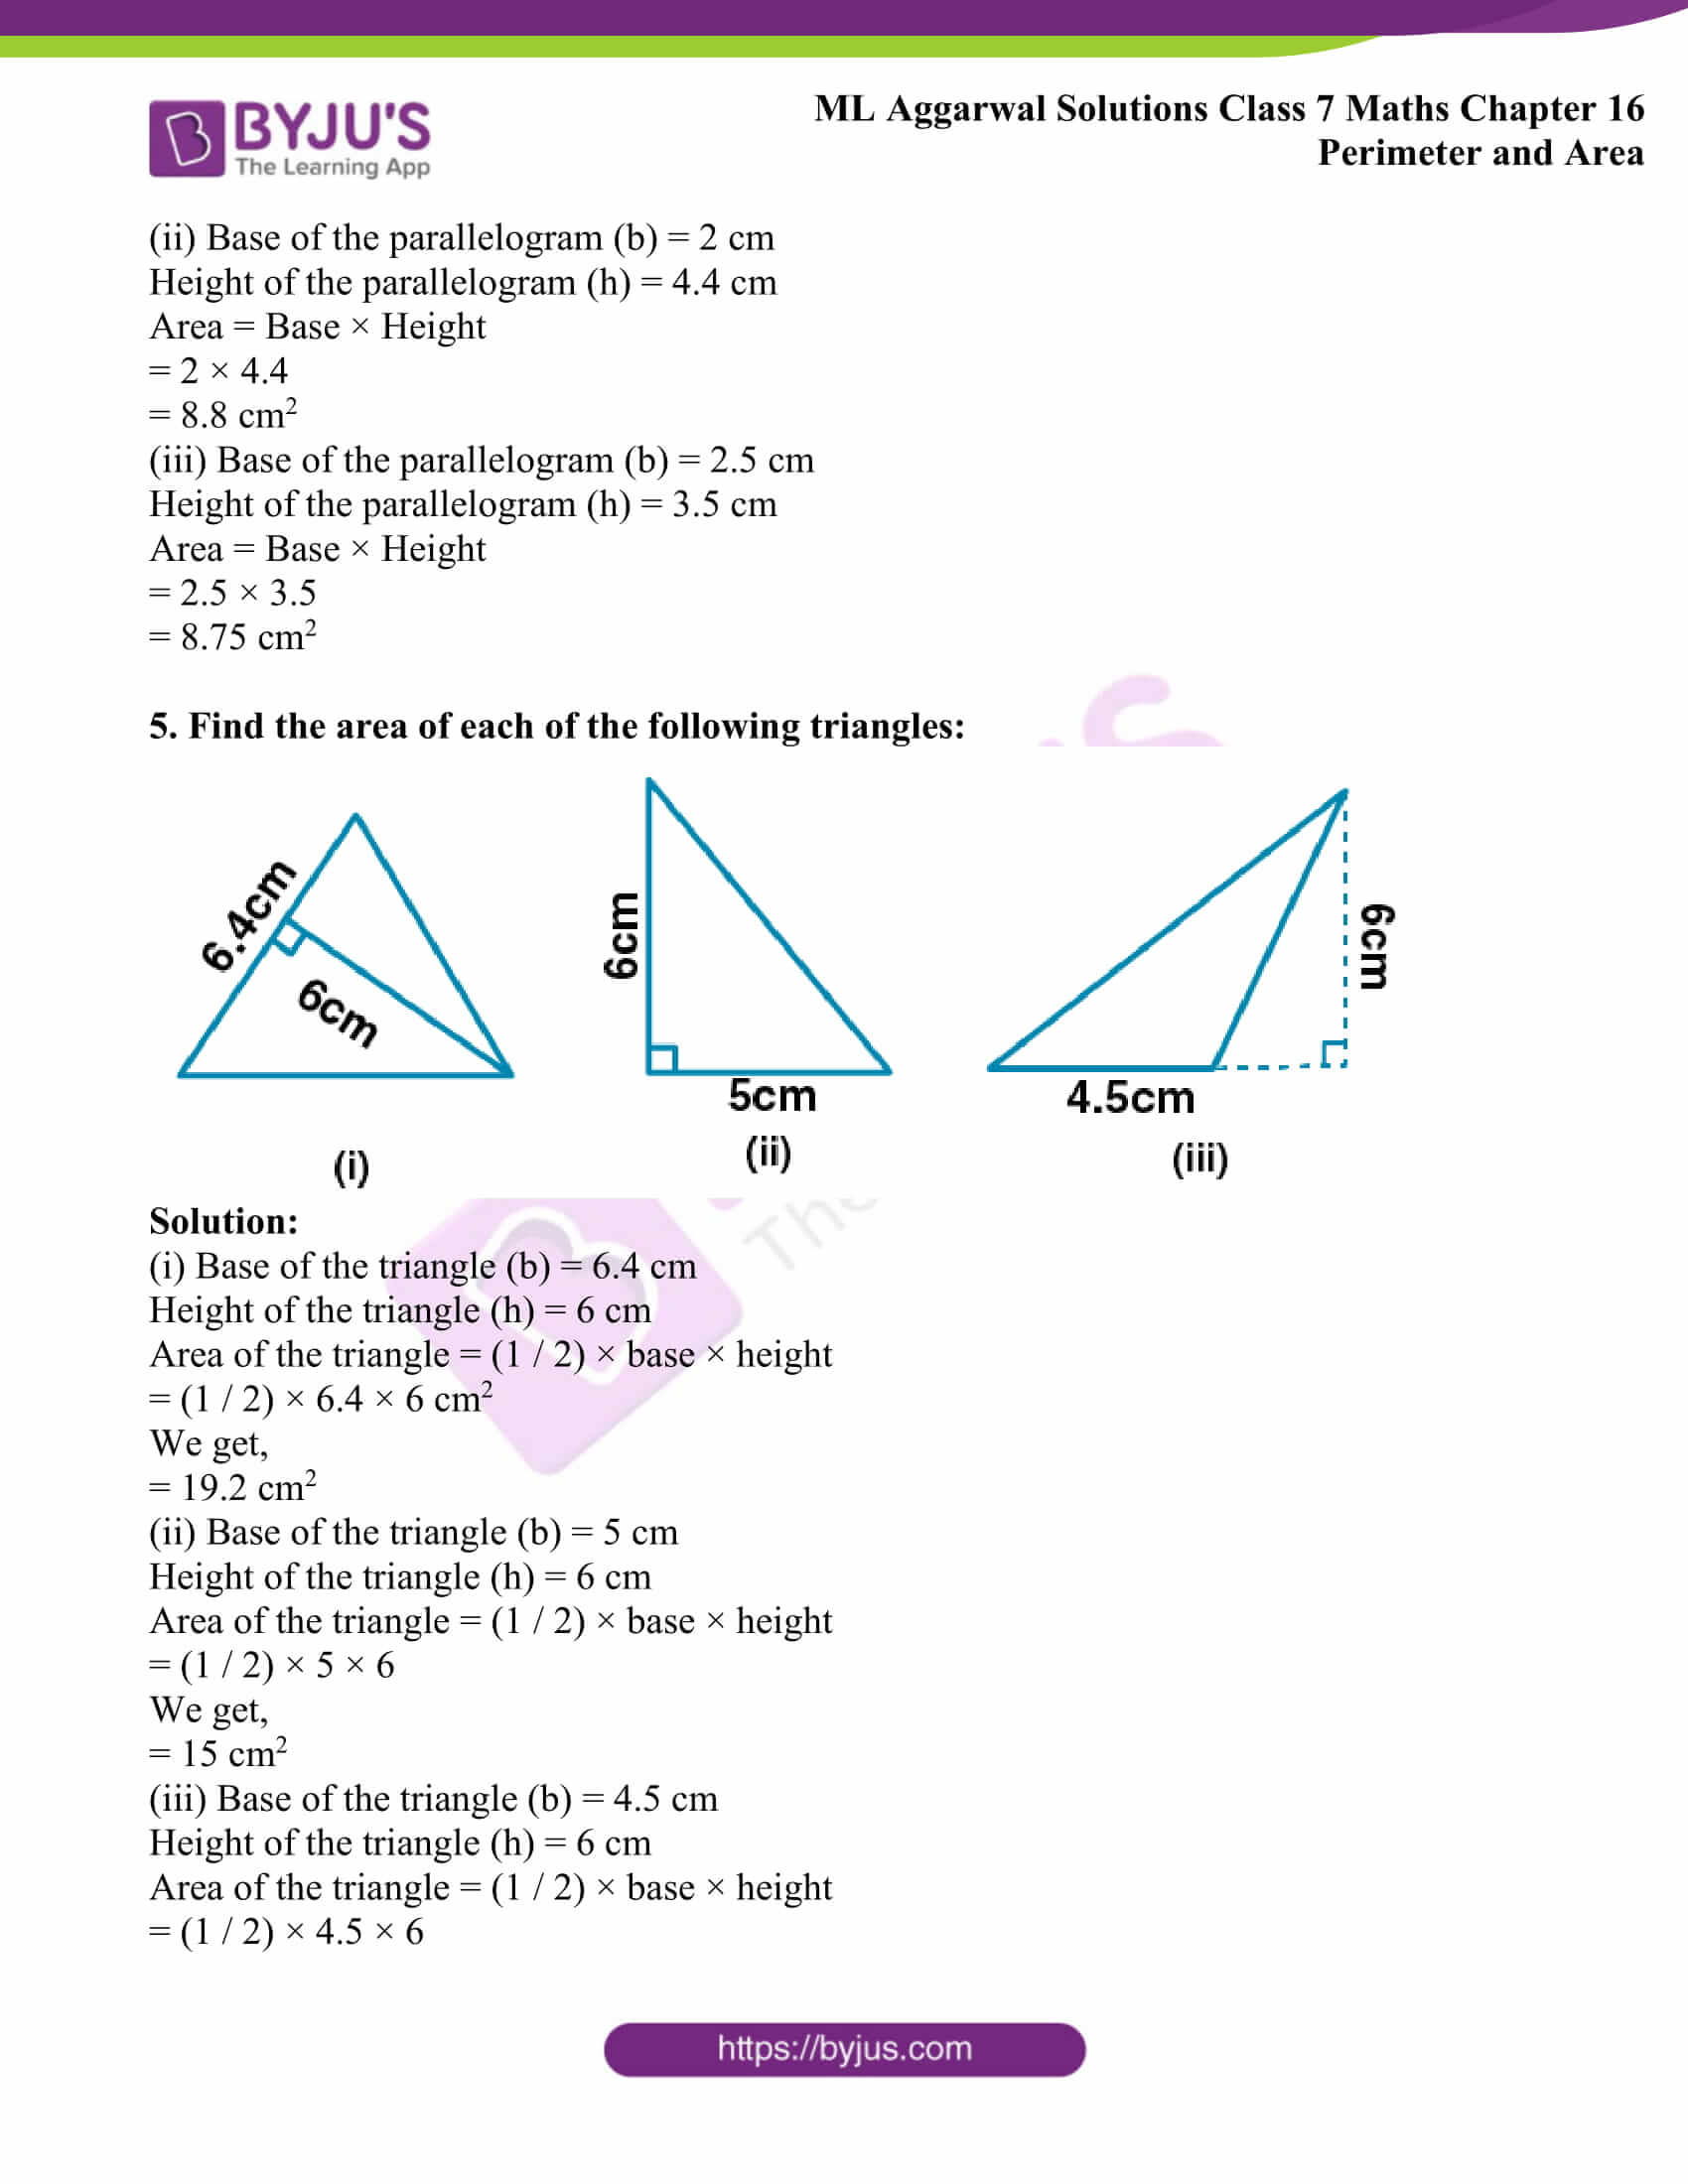 ml aggarwal sol class 7 maths chapter 16 4